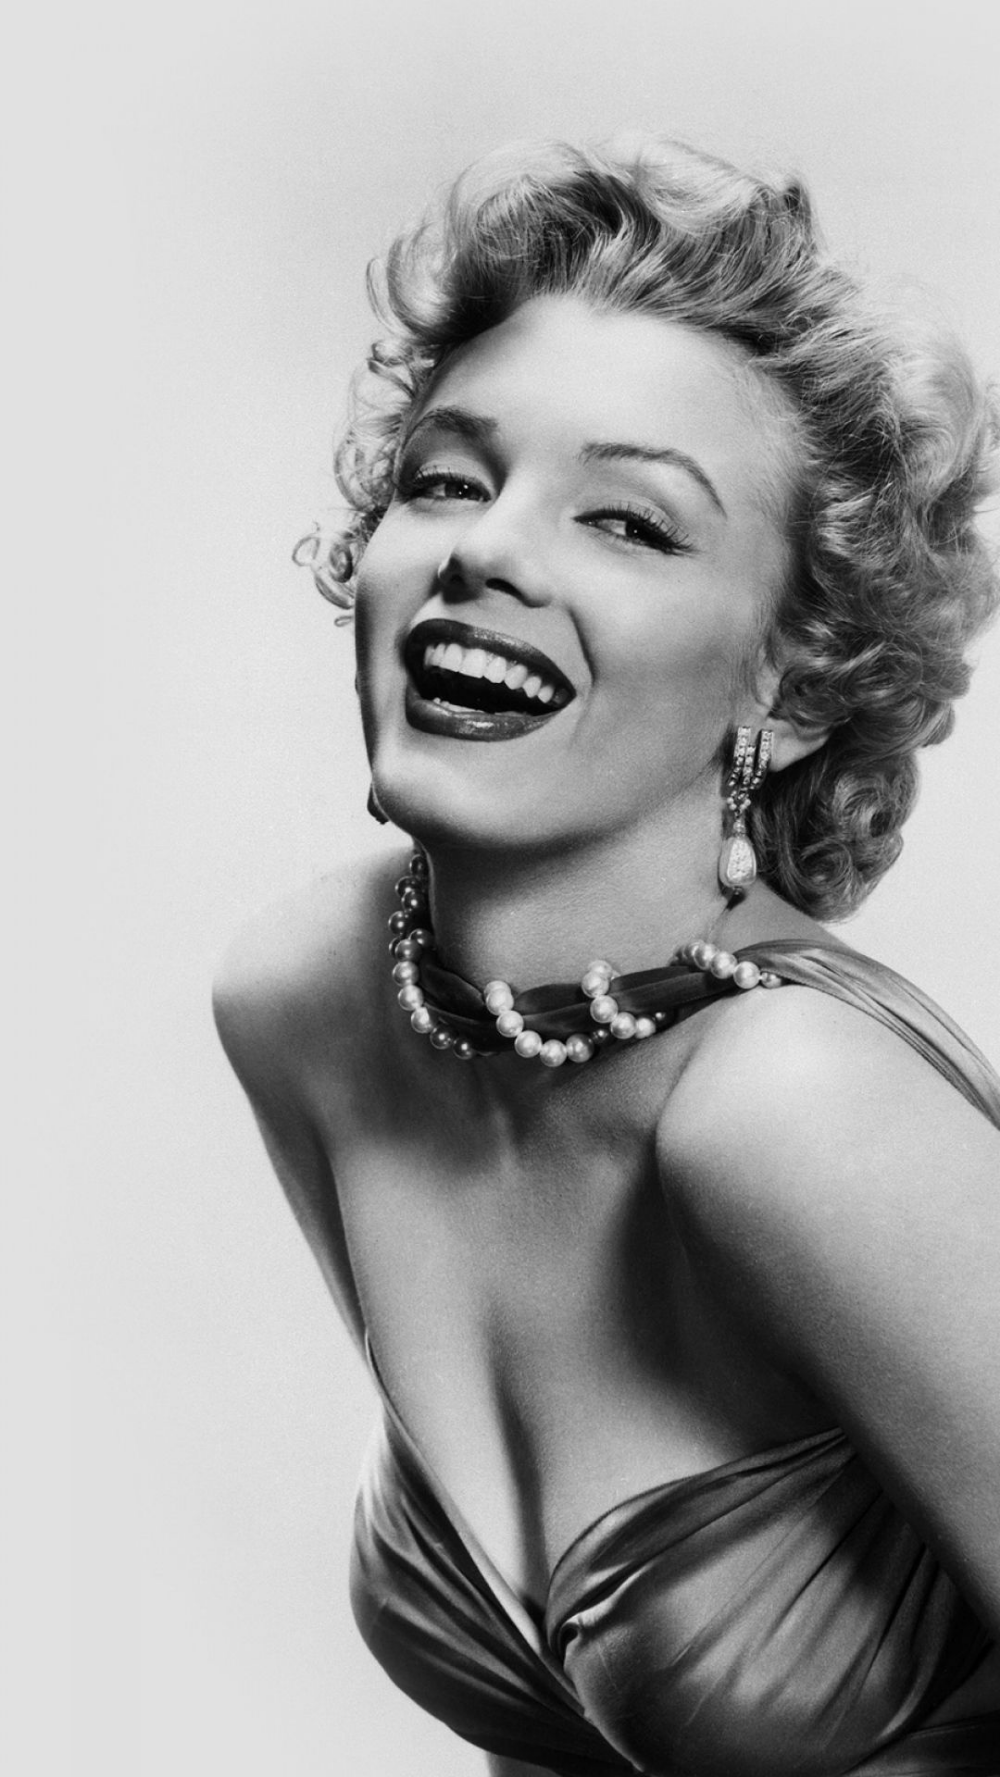 Marilyn Monroe Iphone Wallpaper Marilyn Monroe, HD